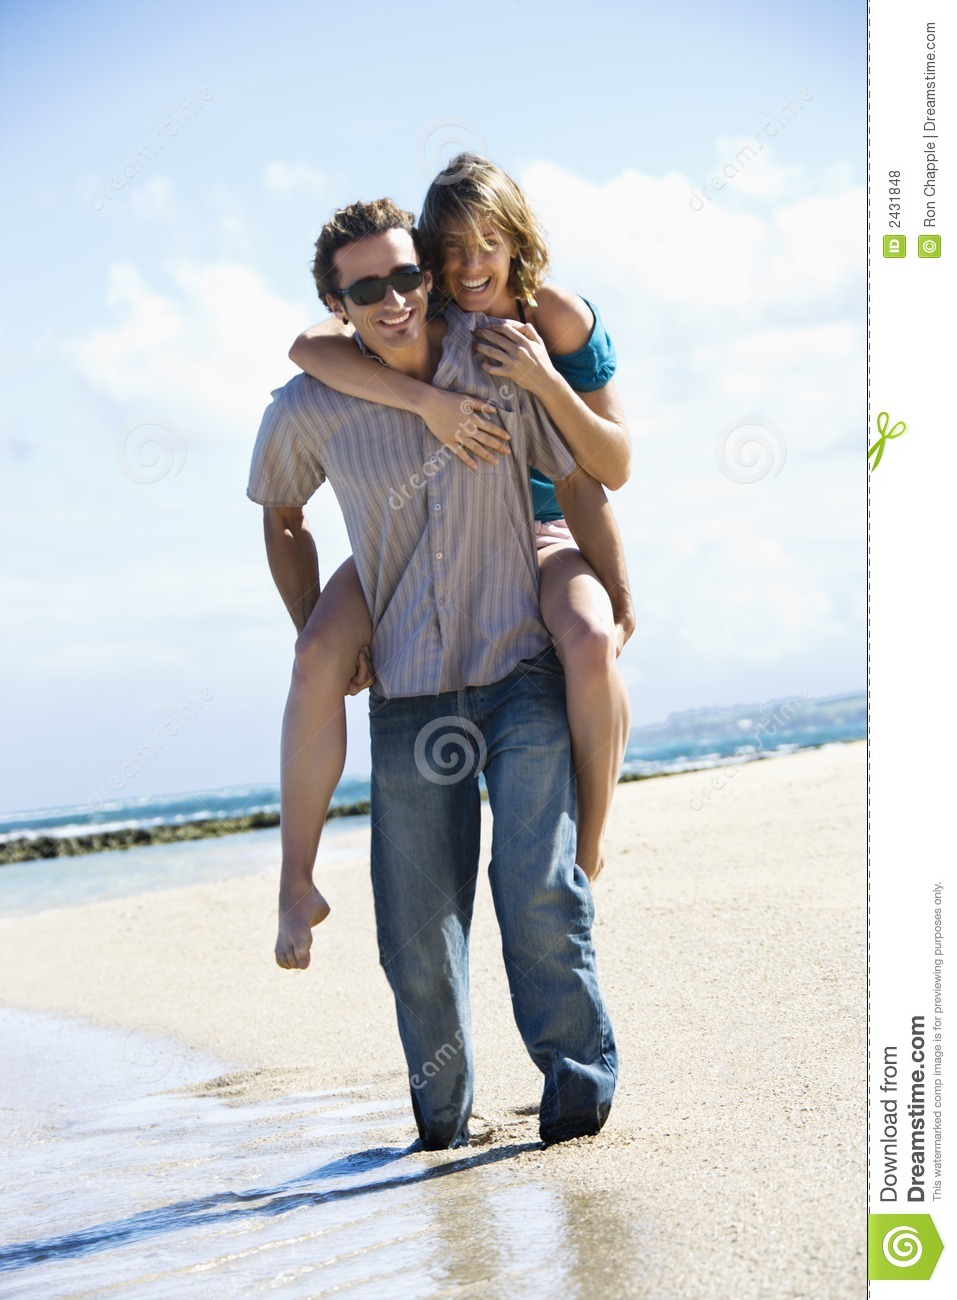 Stock photo portrait of young man on beach male models picture